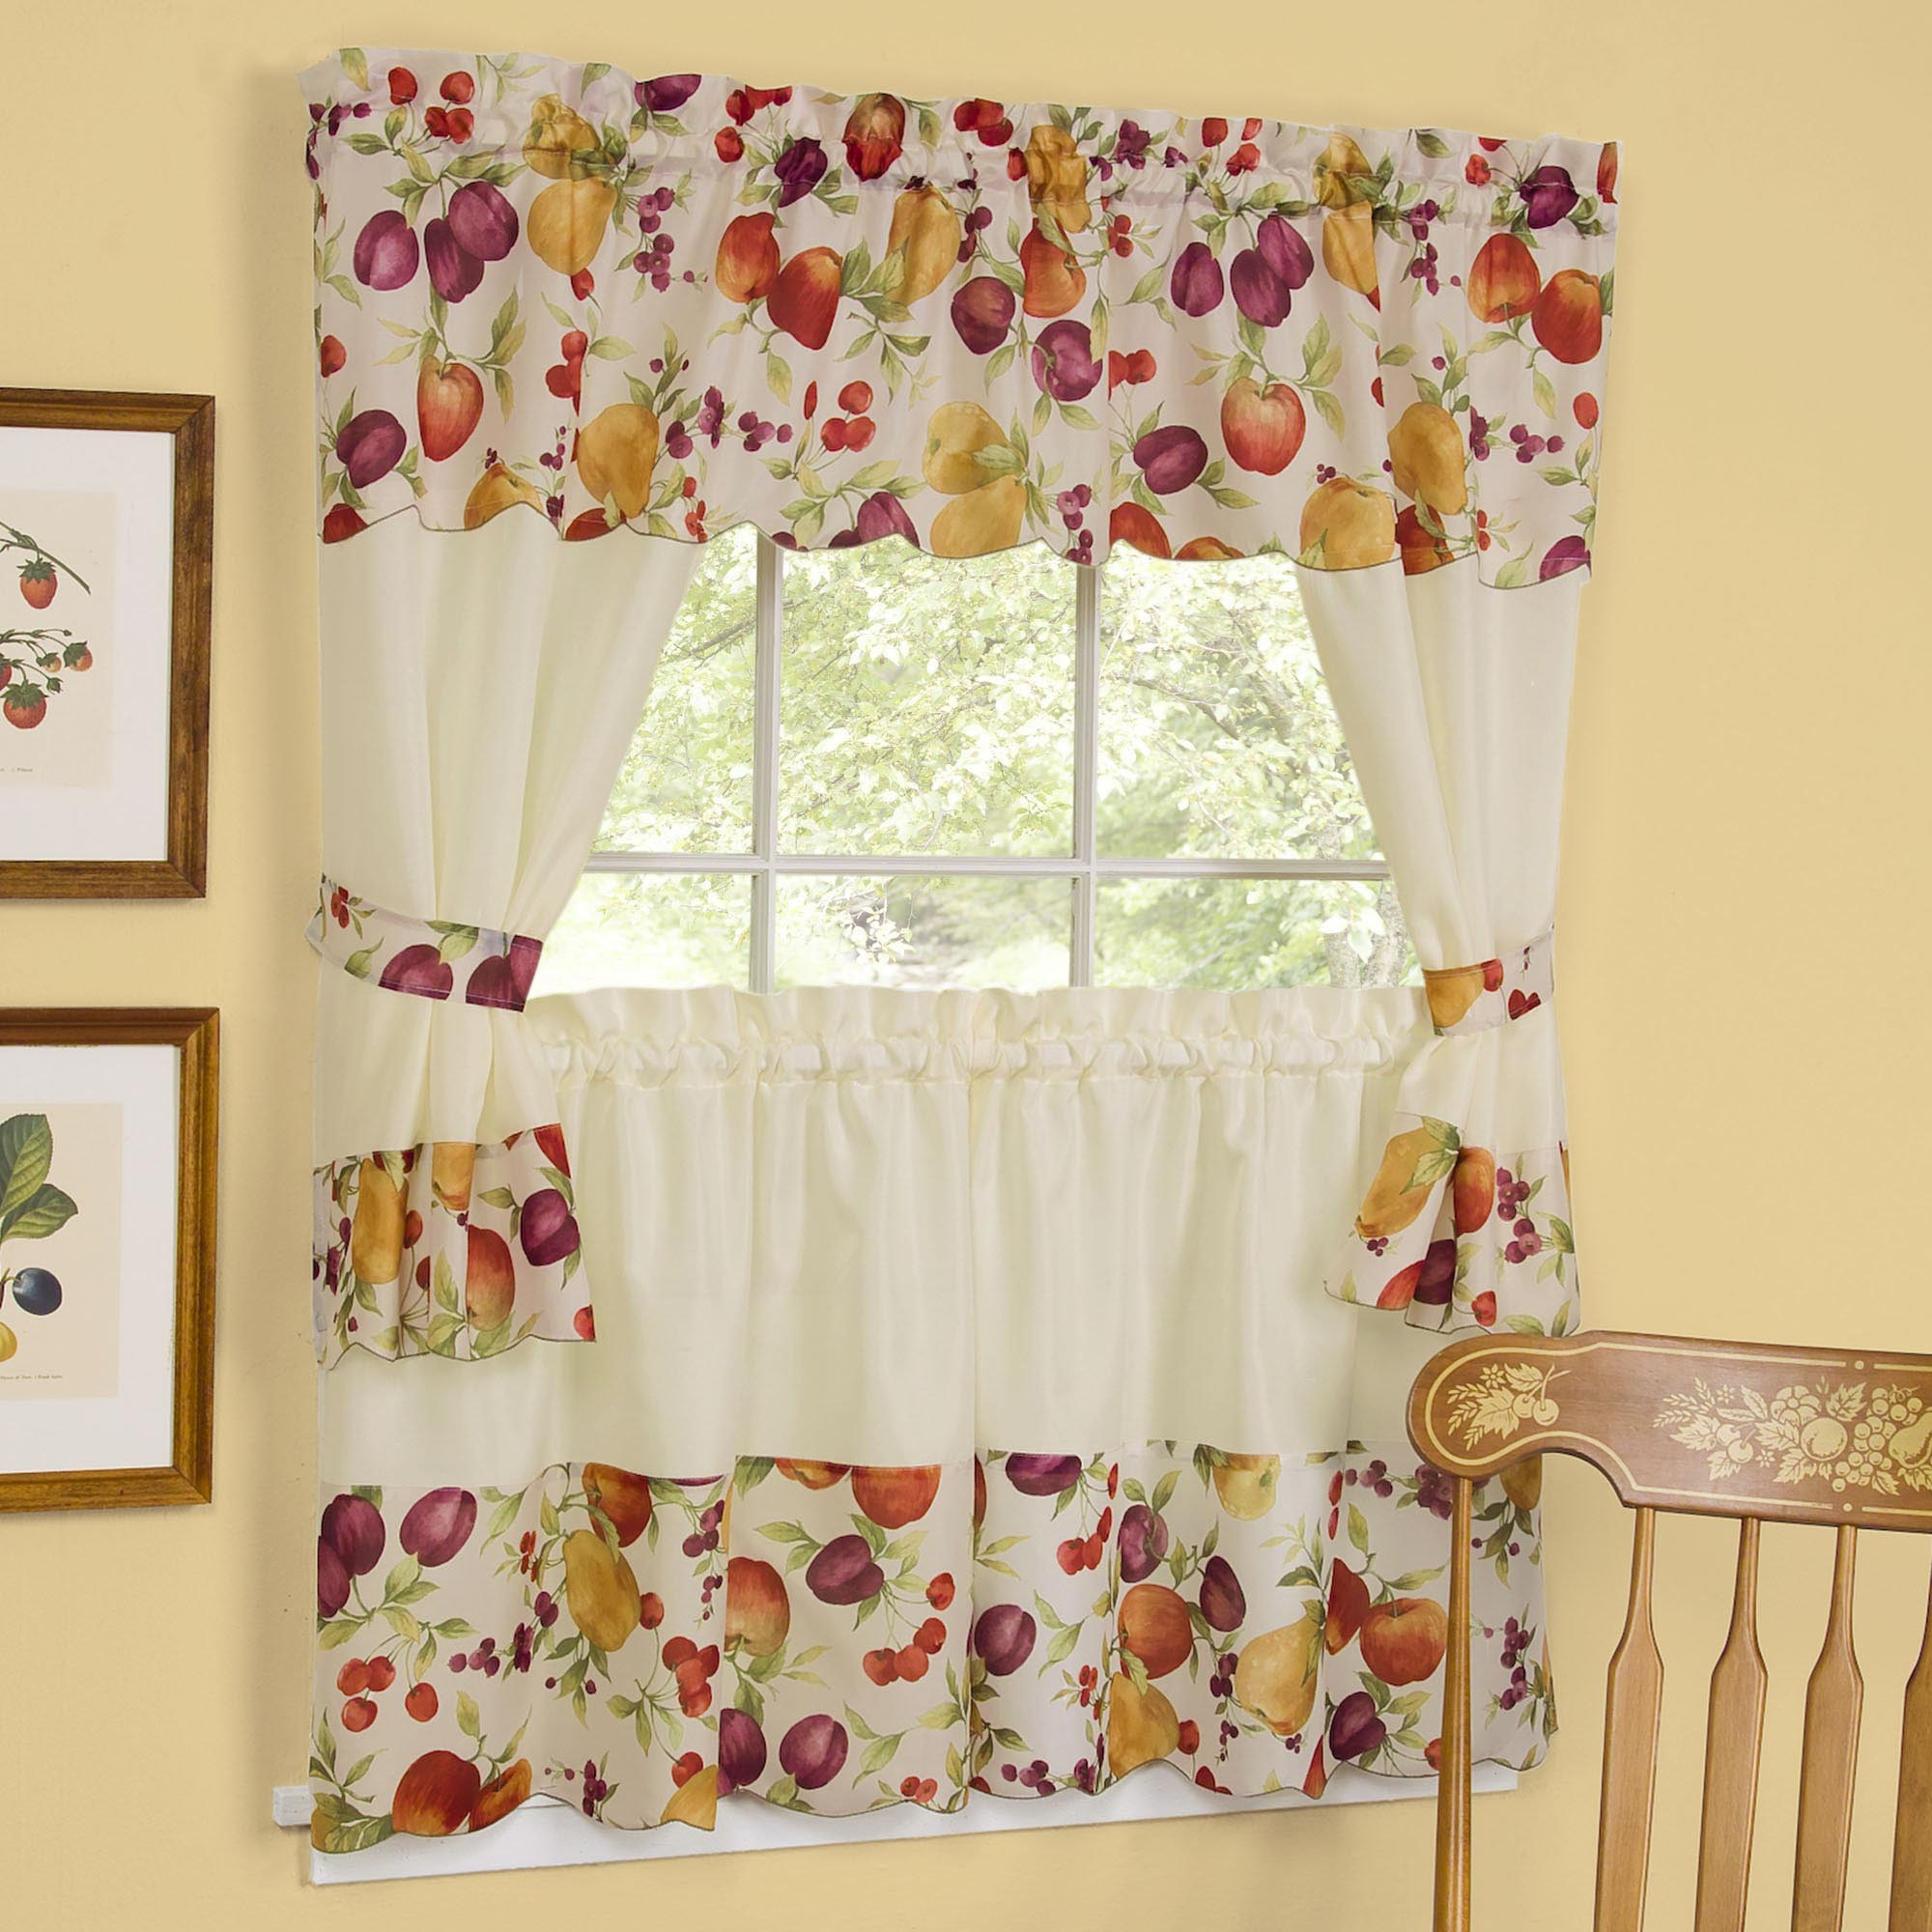 Kitchen curtains swags and valances window treatments for Valance curtains for kitchen